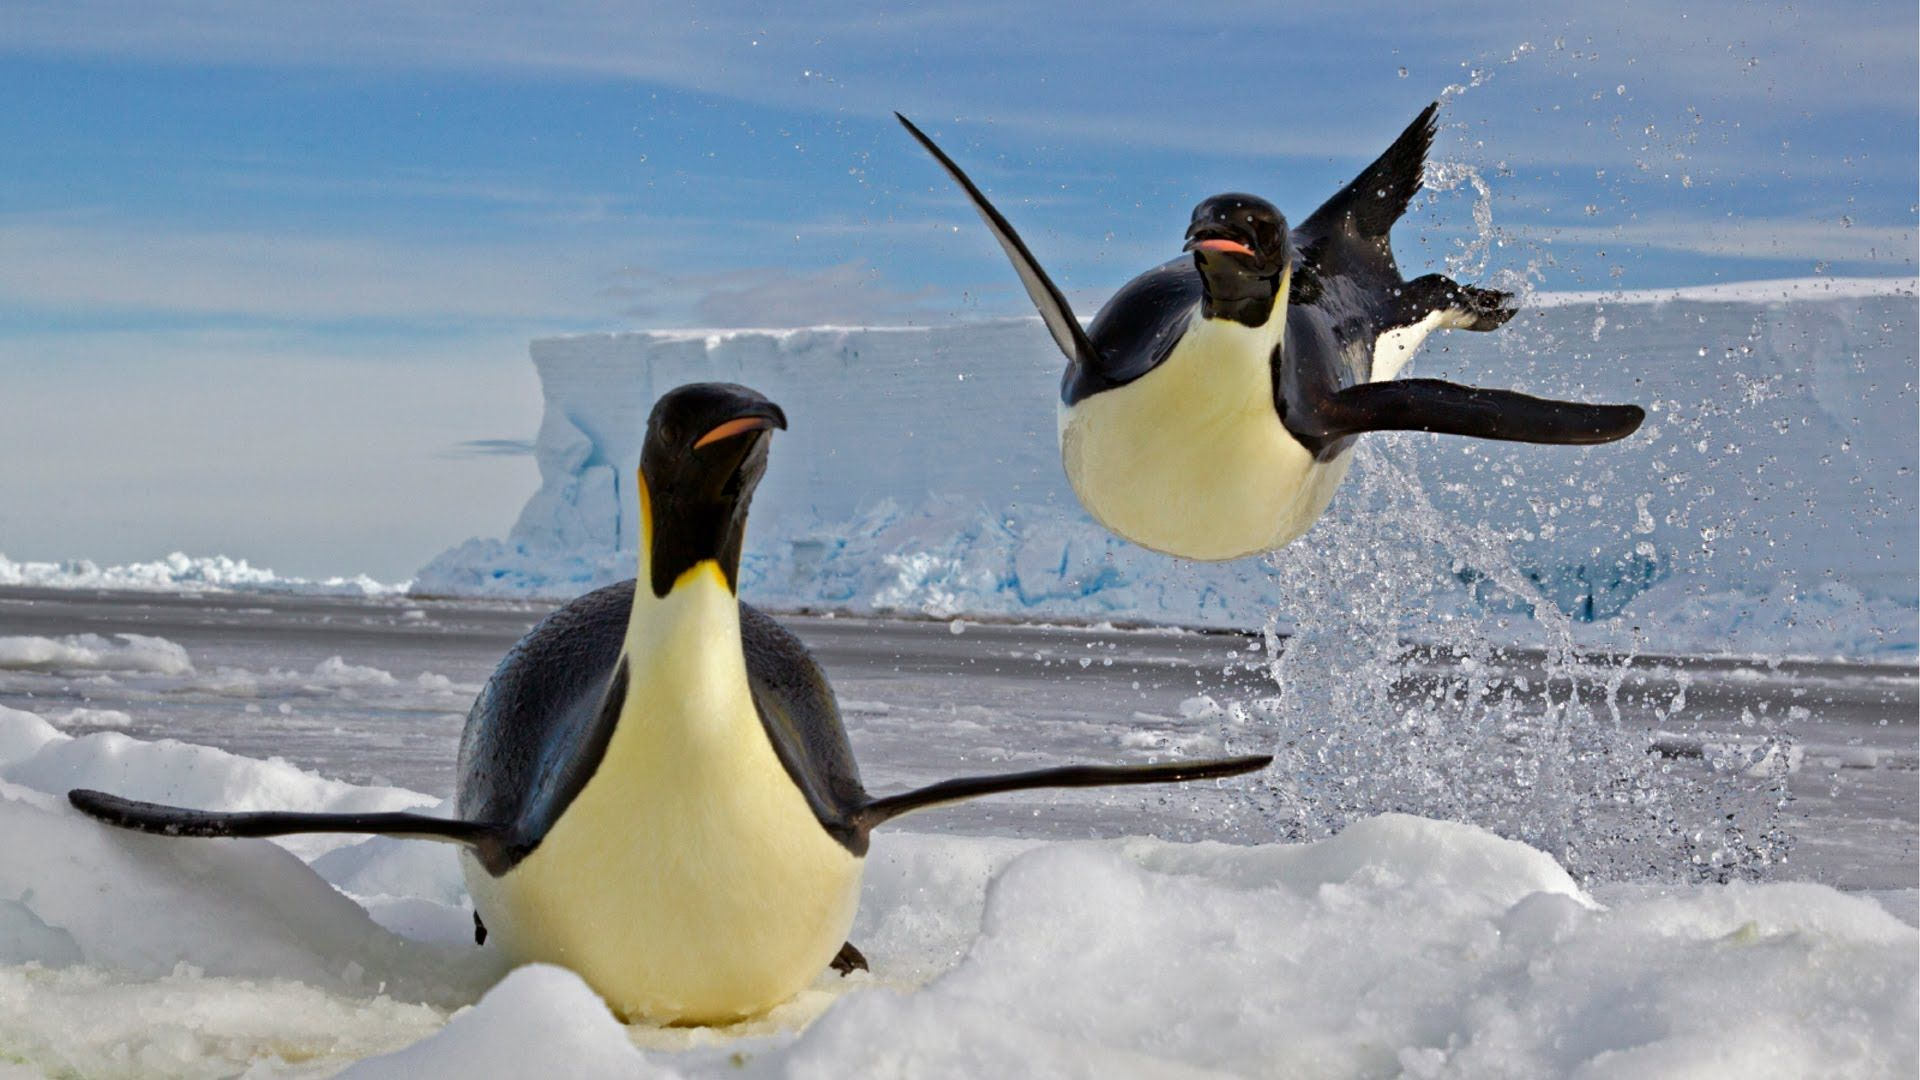 National Geographic Live! - Paul Nicklen: Emperors of the Ice